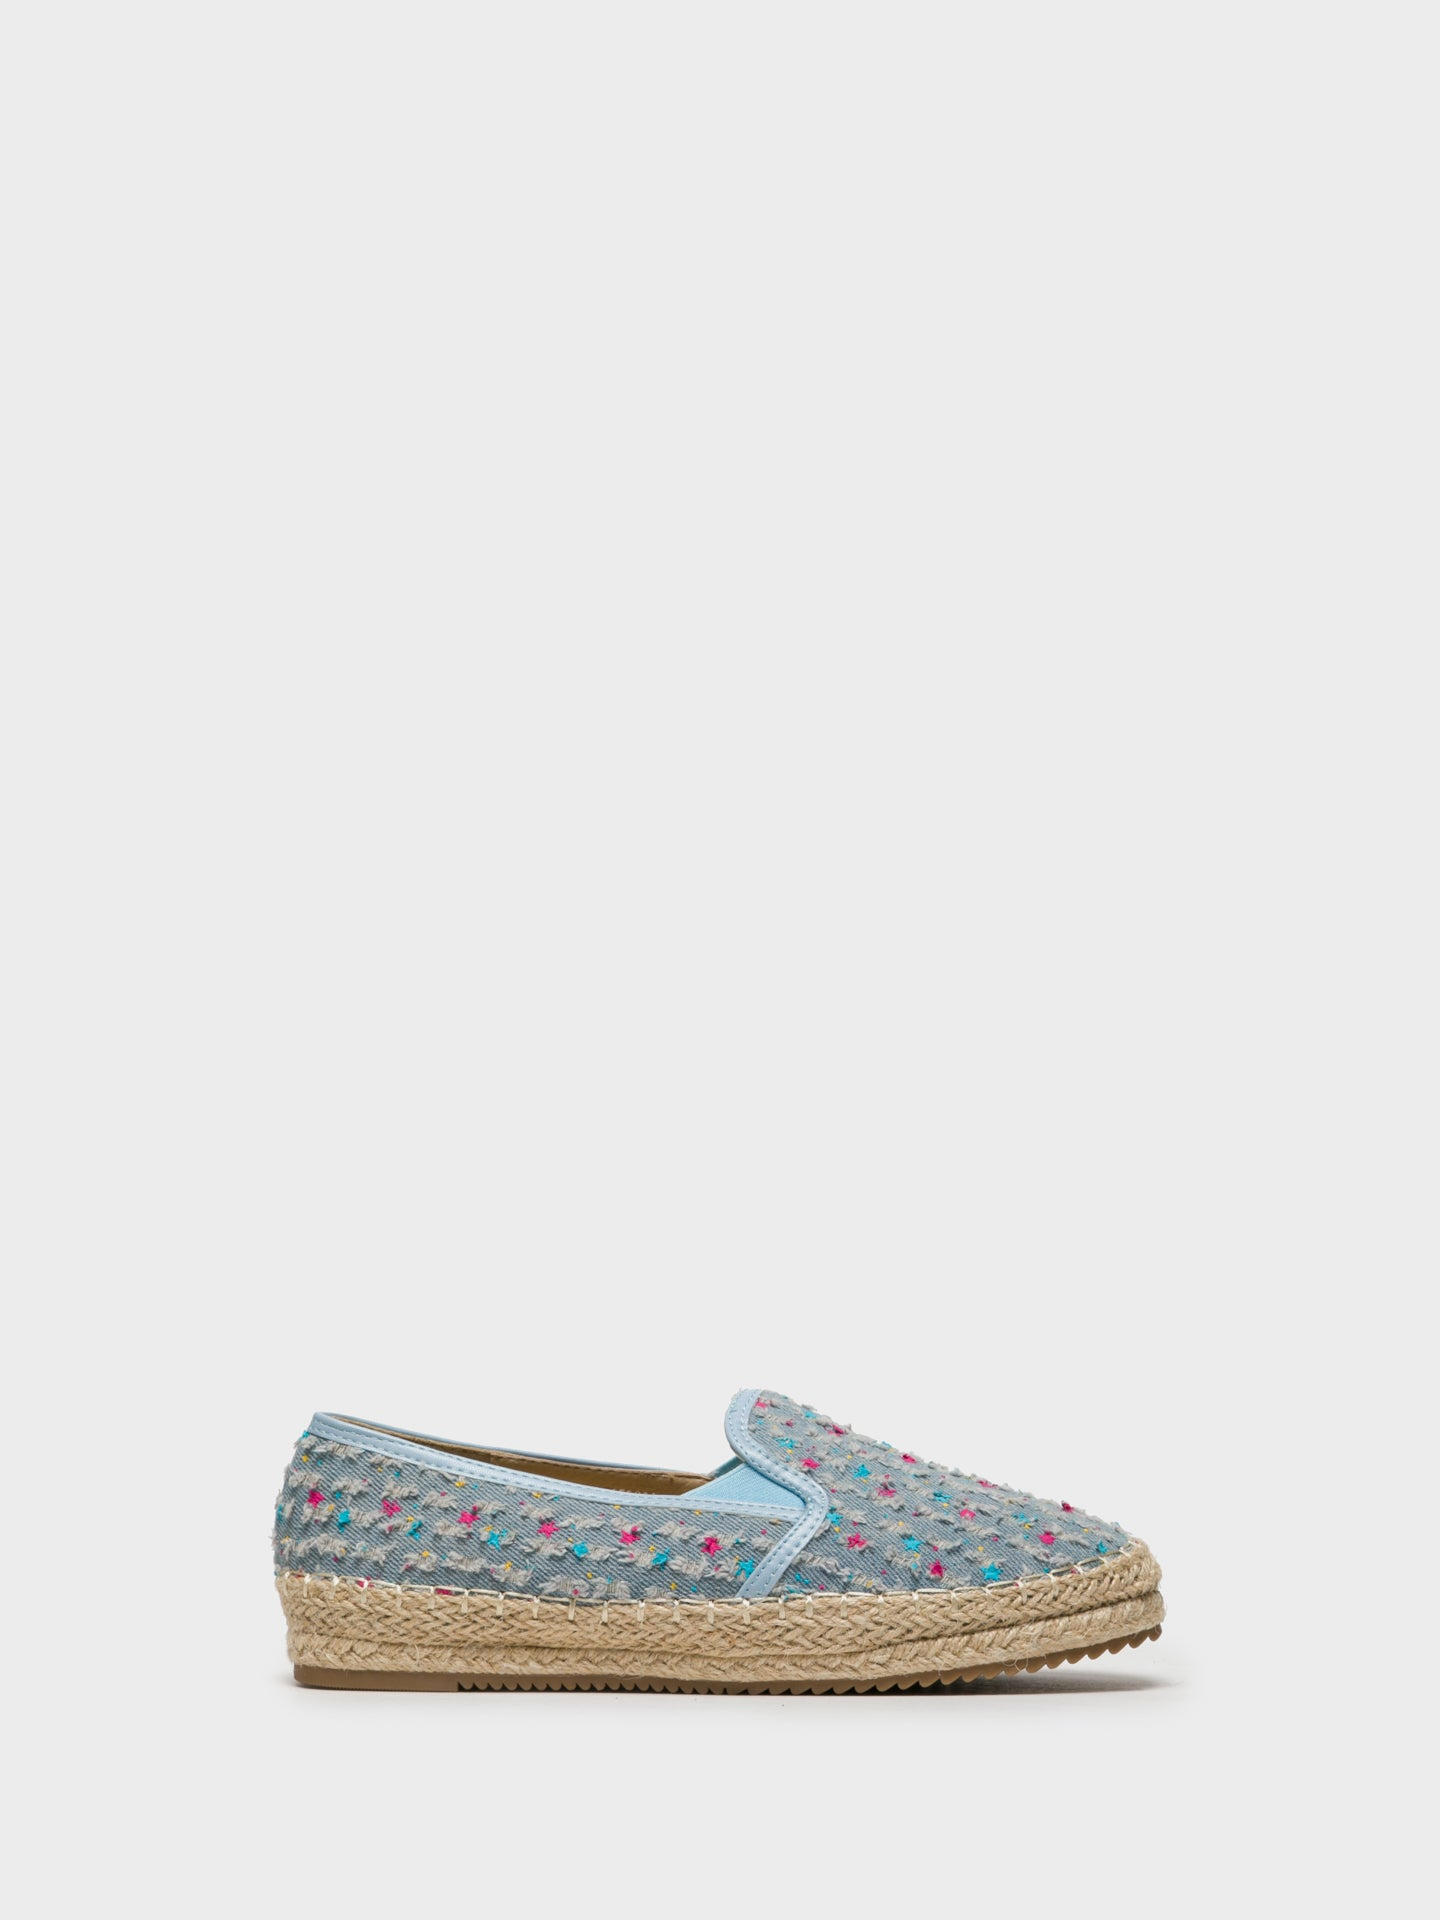 Foreva LightBlue Elasticated Espadrilles